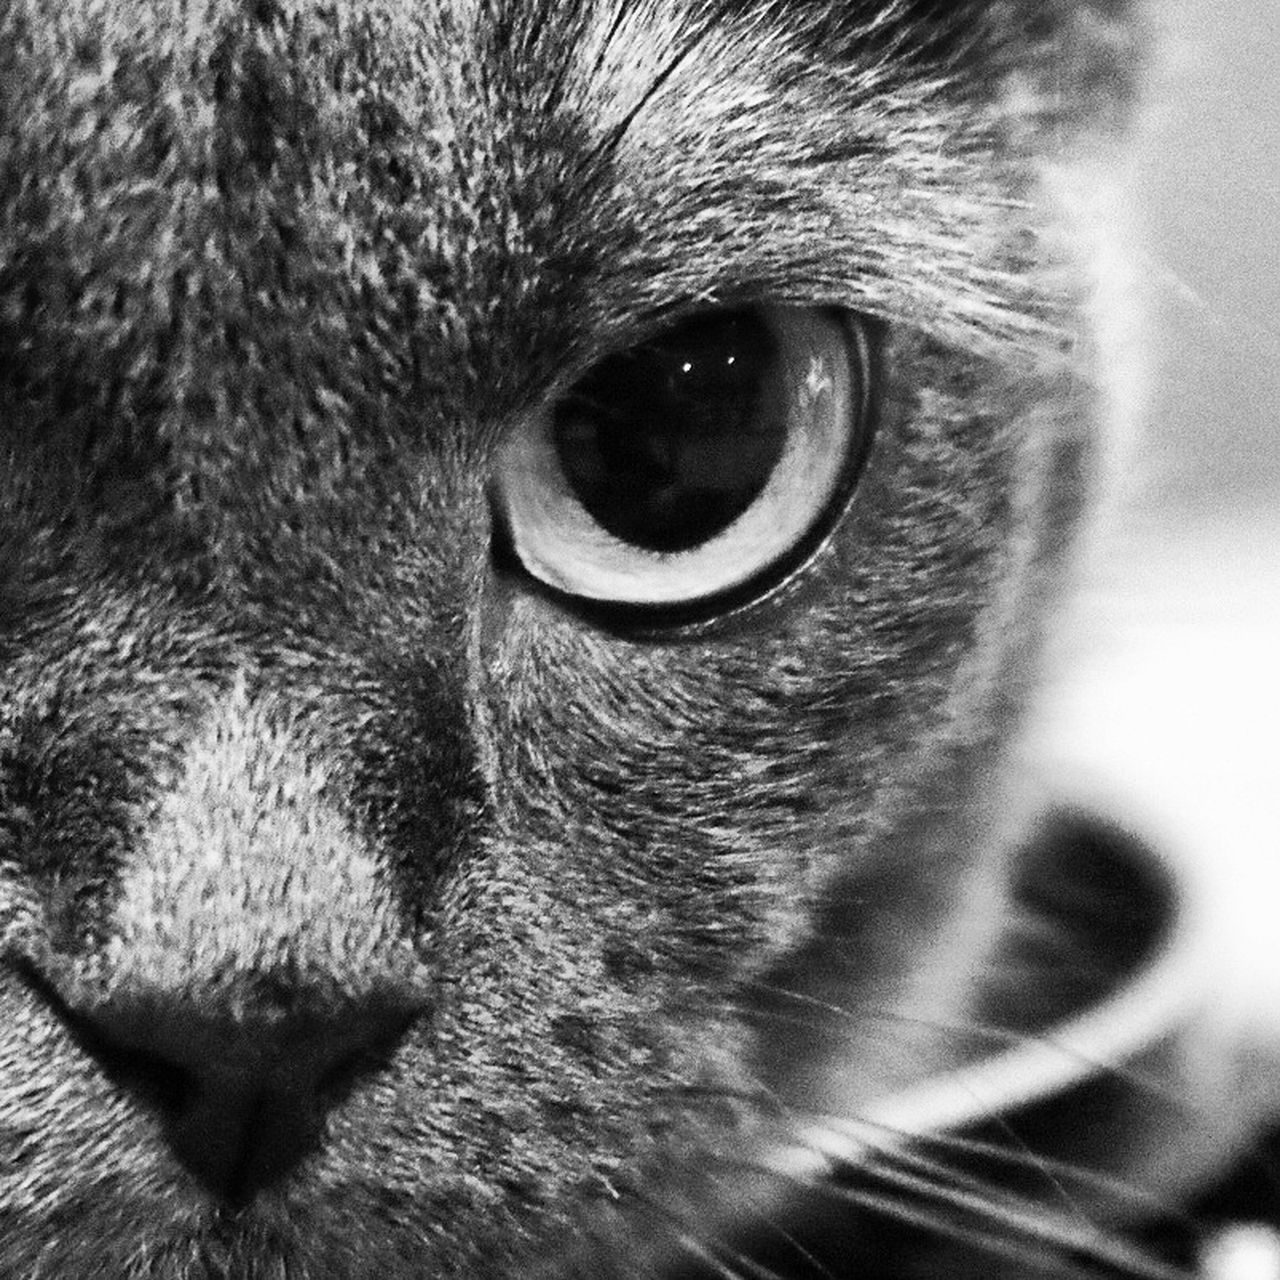 domestic cat, pets, one animal, mammal, domestic animals, looking, cat, portrait, feline, domestic, close-up, animal themes, animal head, no people, outdoors